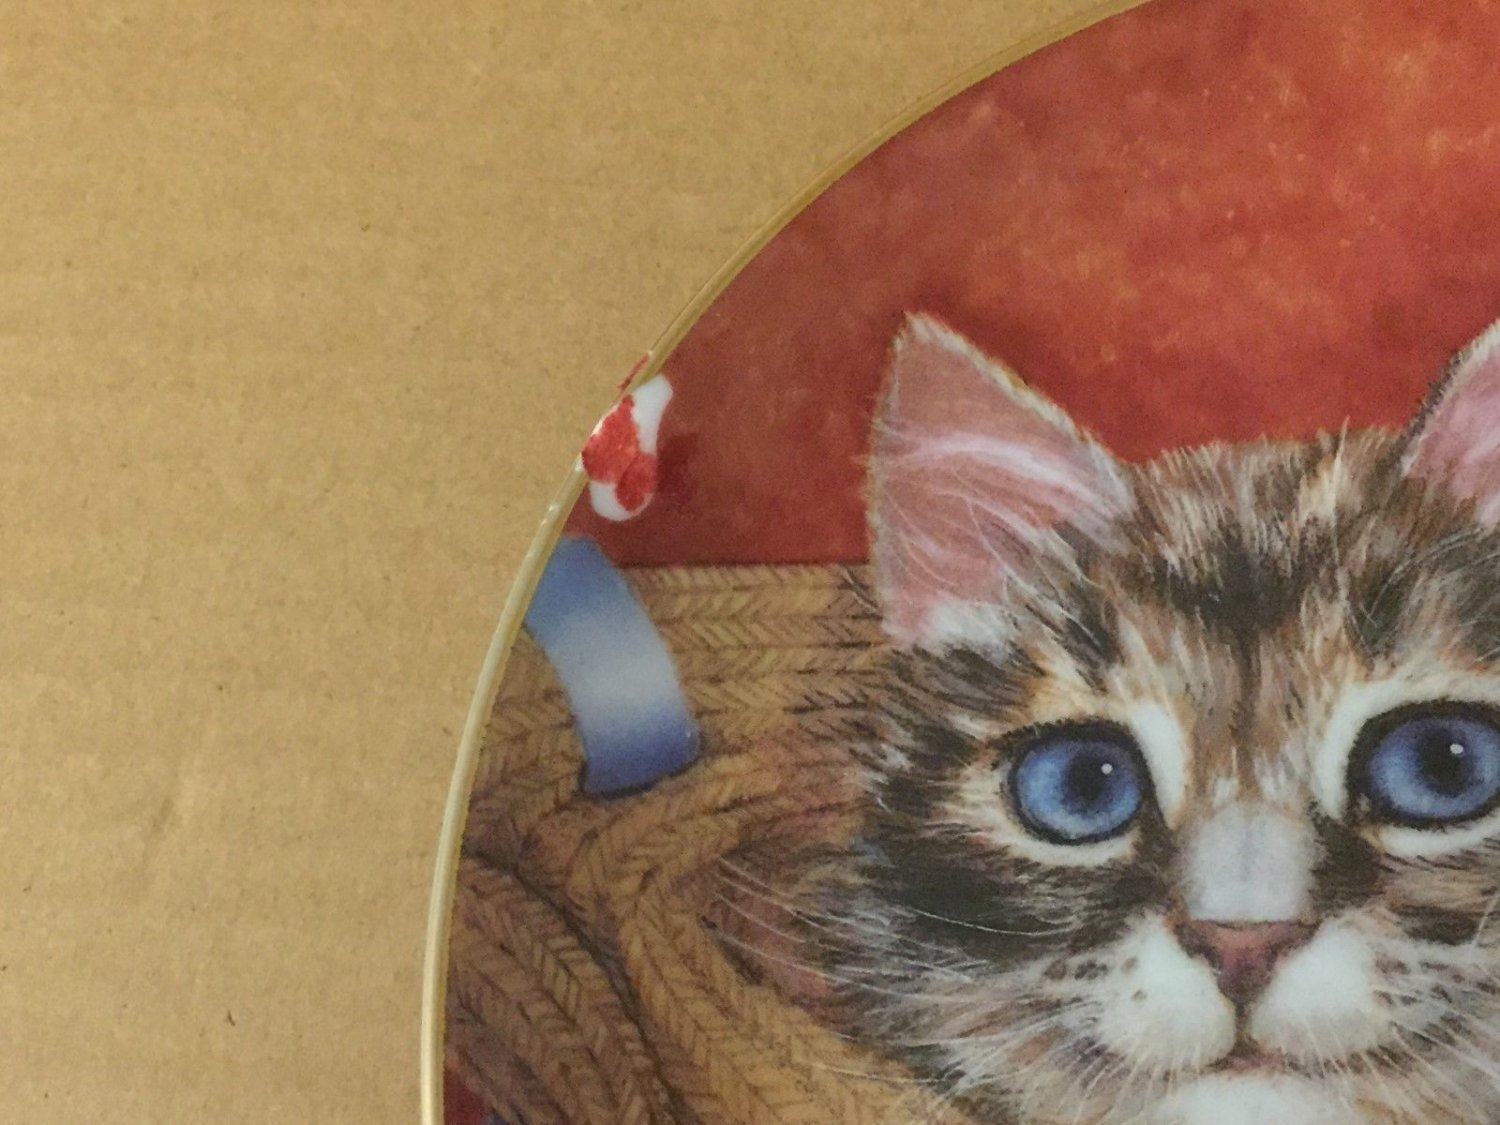 Toby And Tammy PURRFECT PAIRS Cat Kitten Robert Guzman-Forbes Danbury Mint Plate image 2